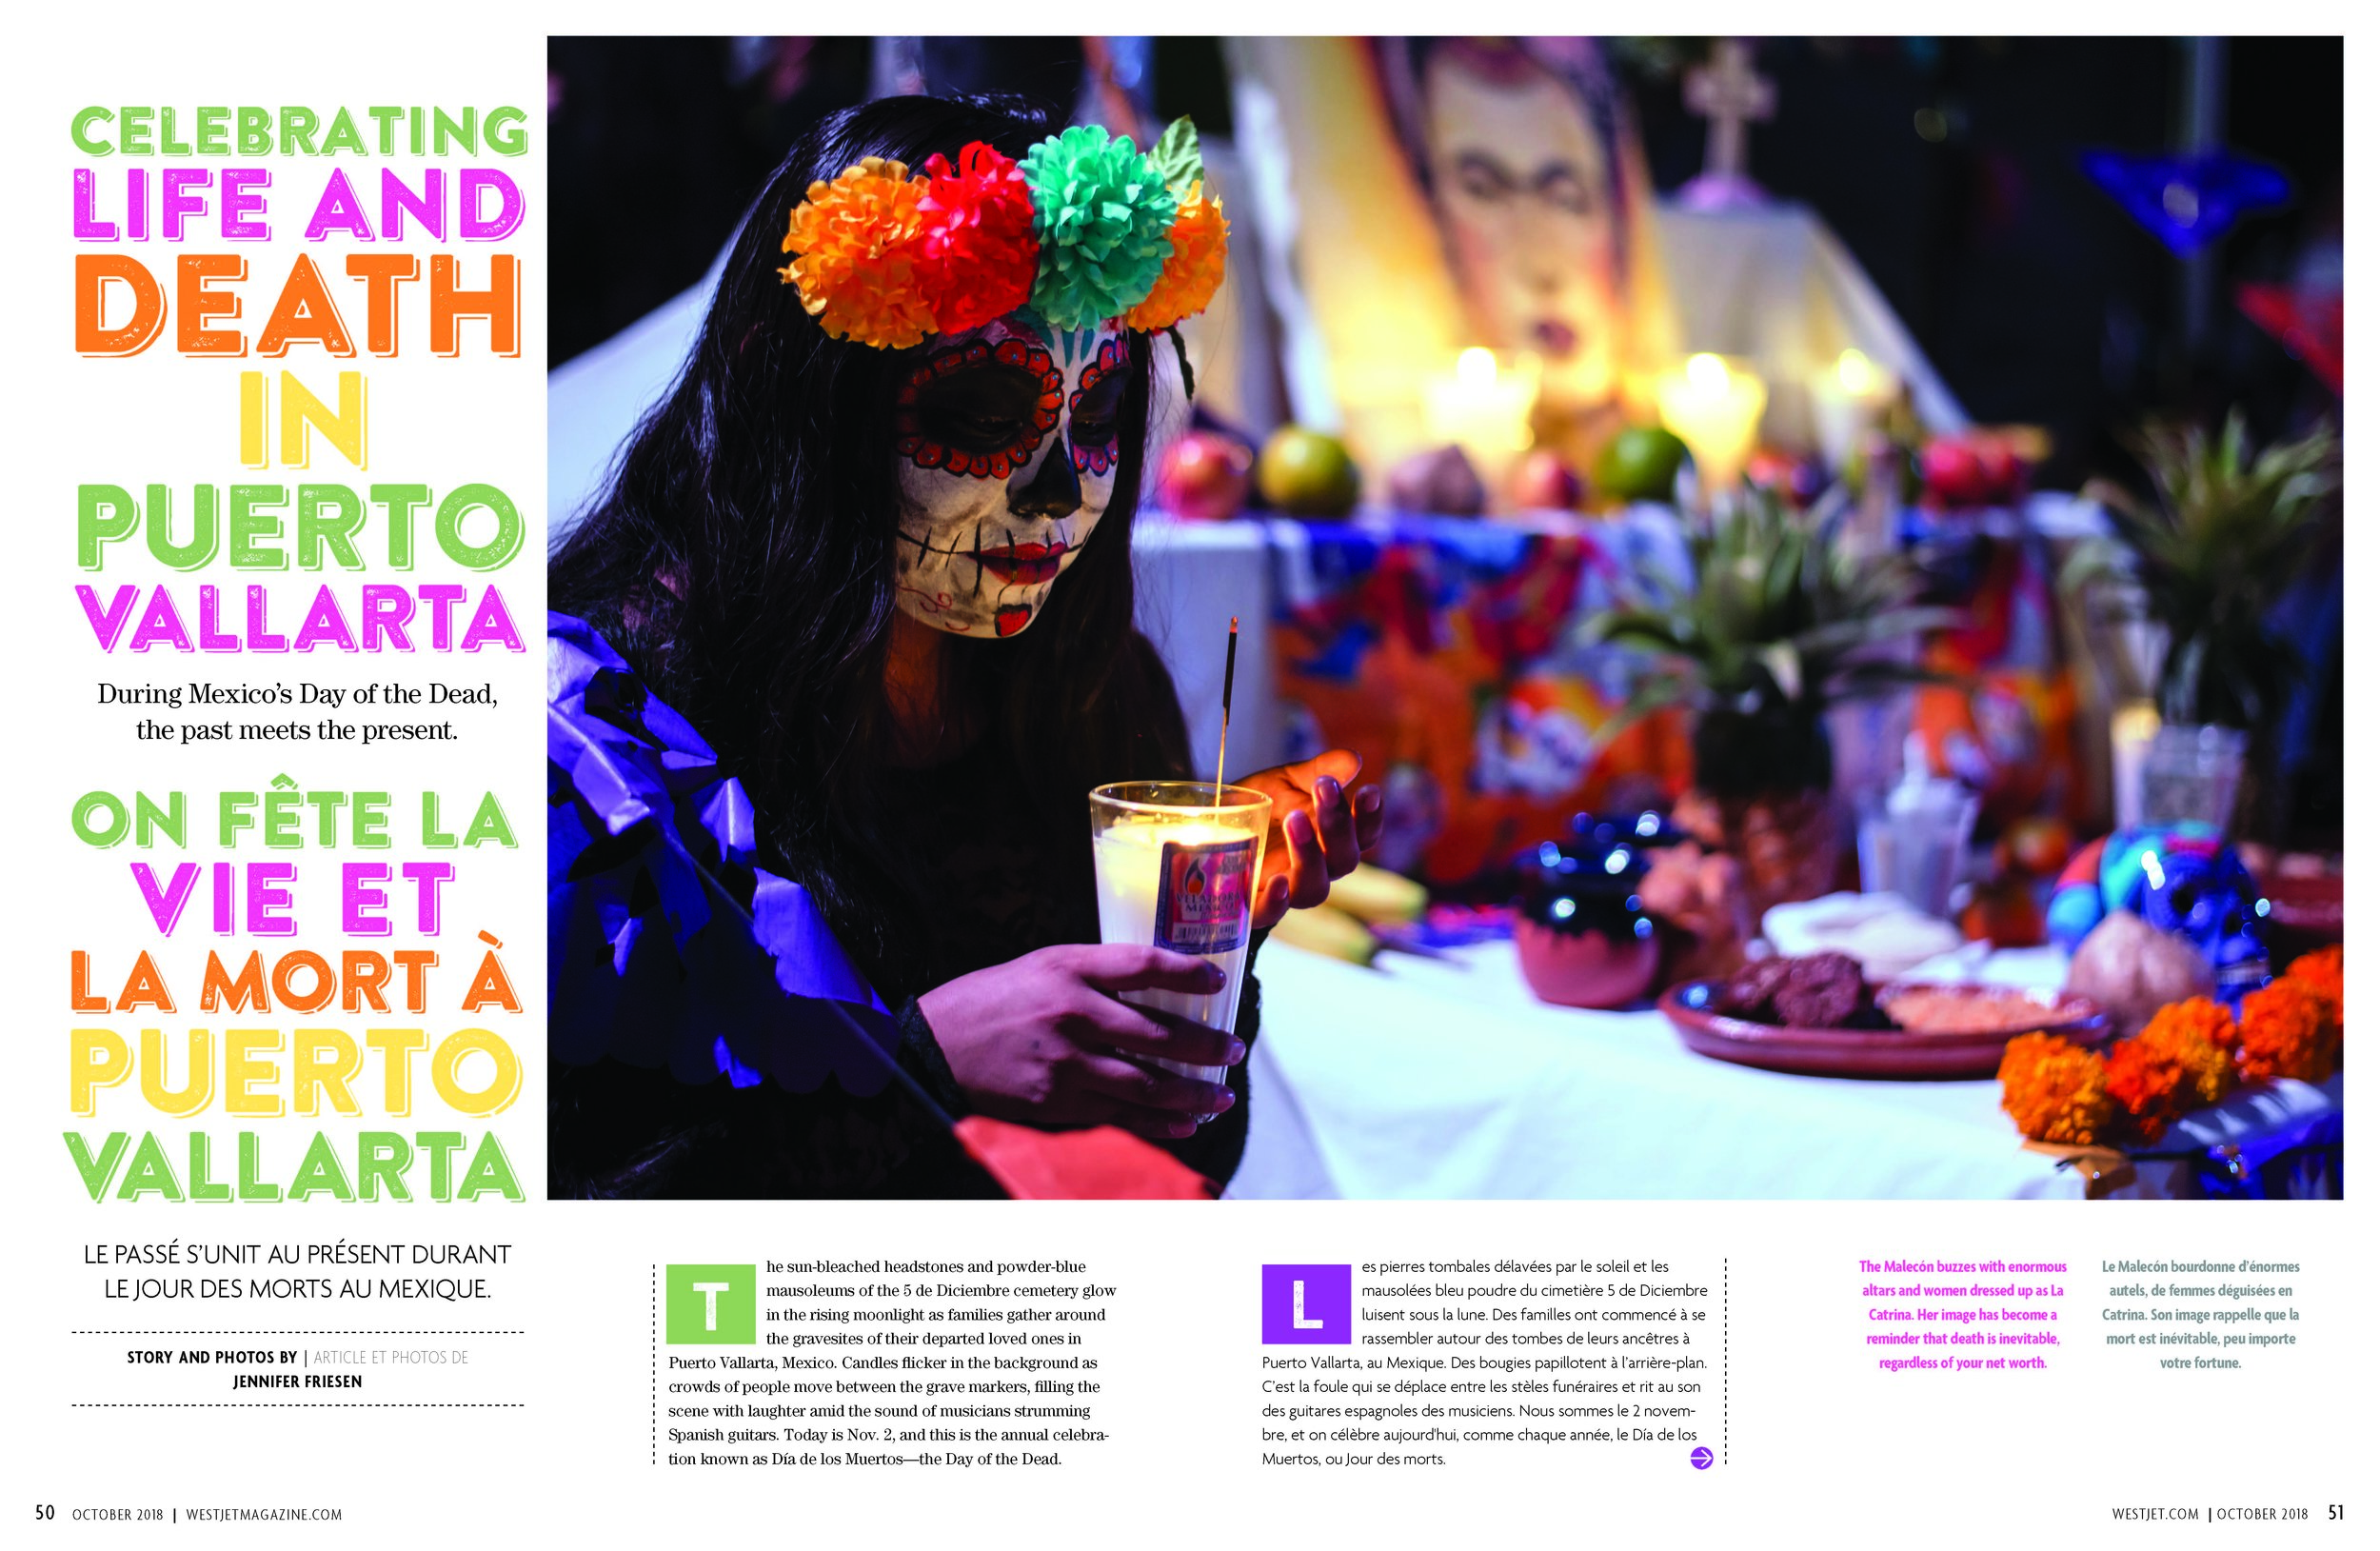 10-2018-Feature-Celebrating Life and Death in Puerto Vallarta_Page_2.jpg